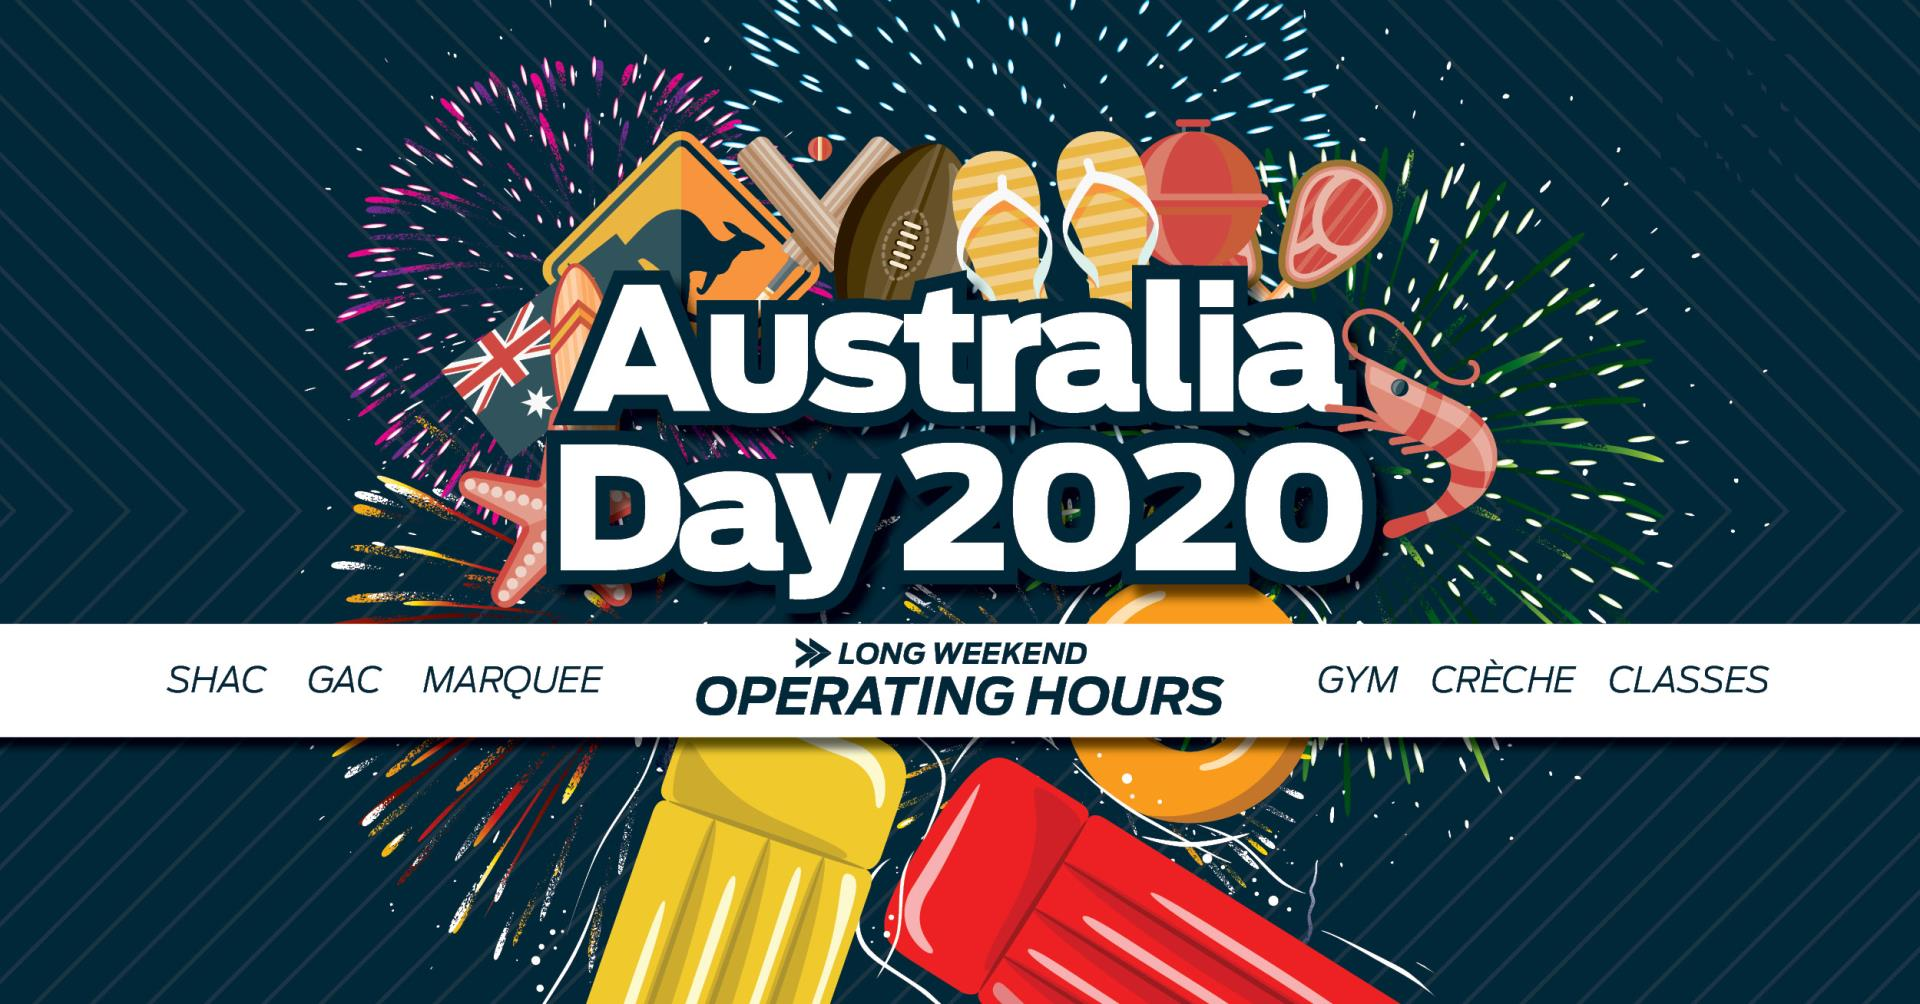 Australia Day Long Weekend Operating Hours